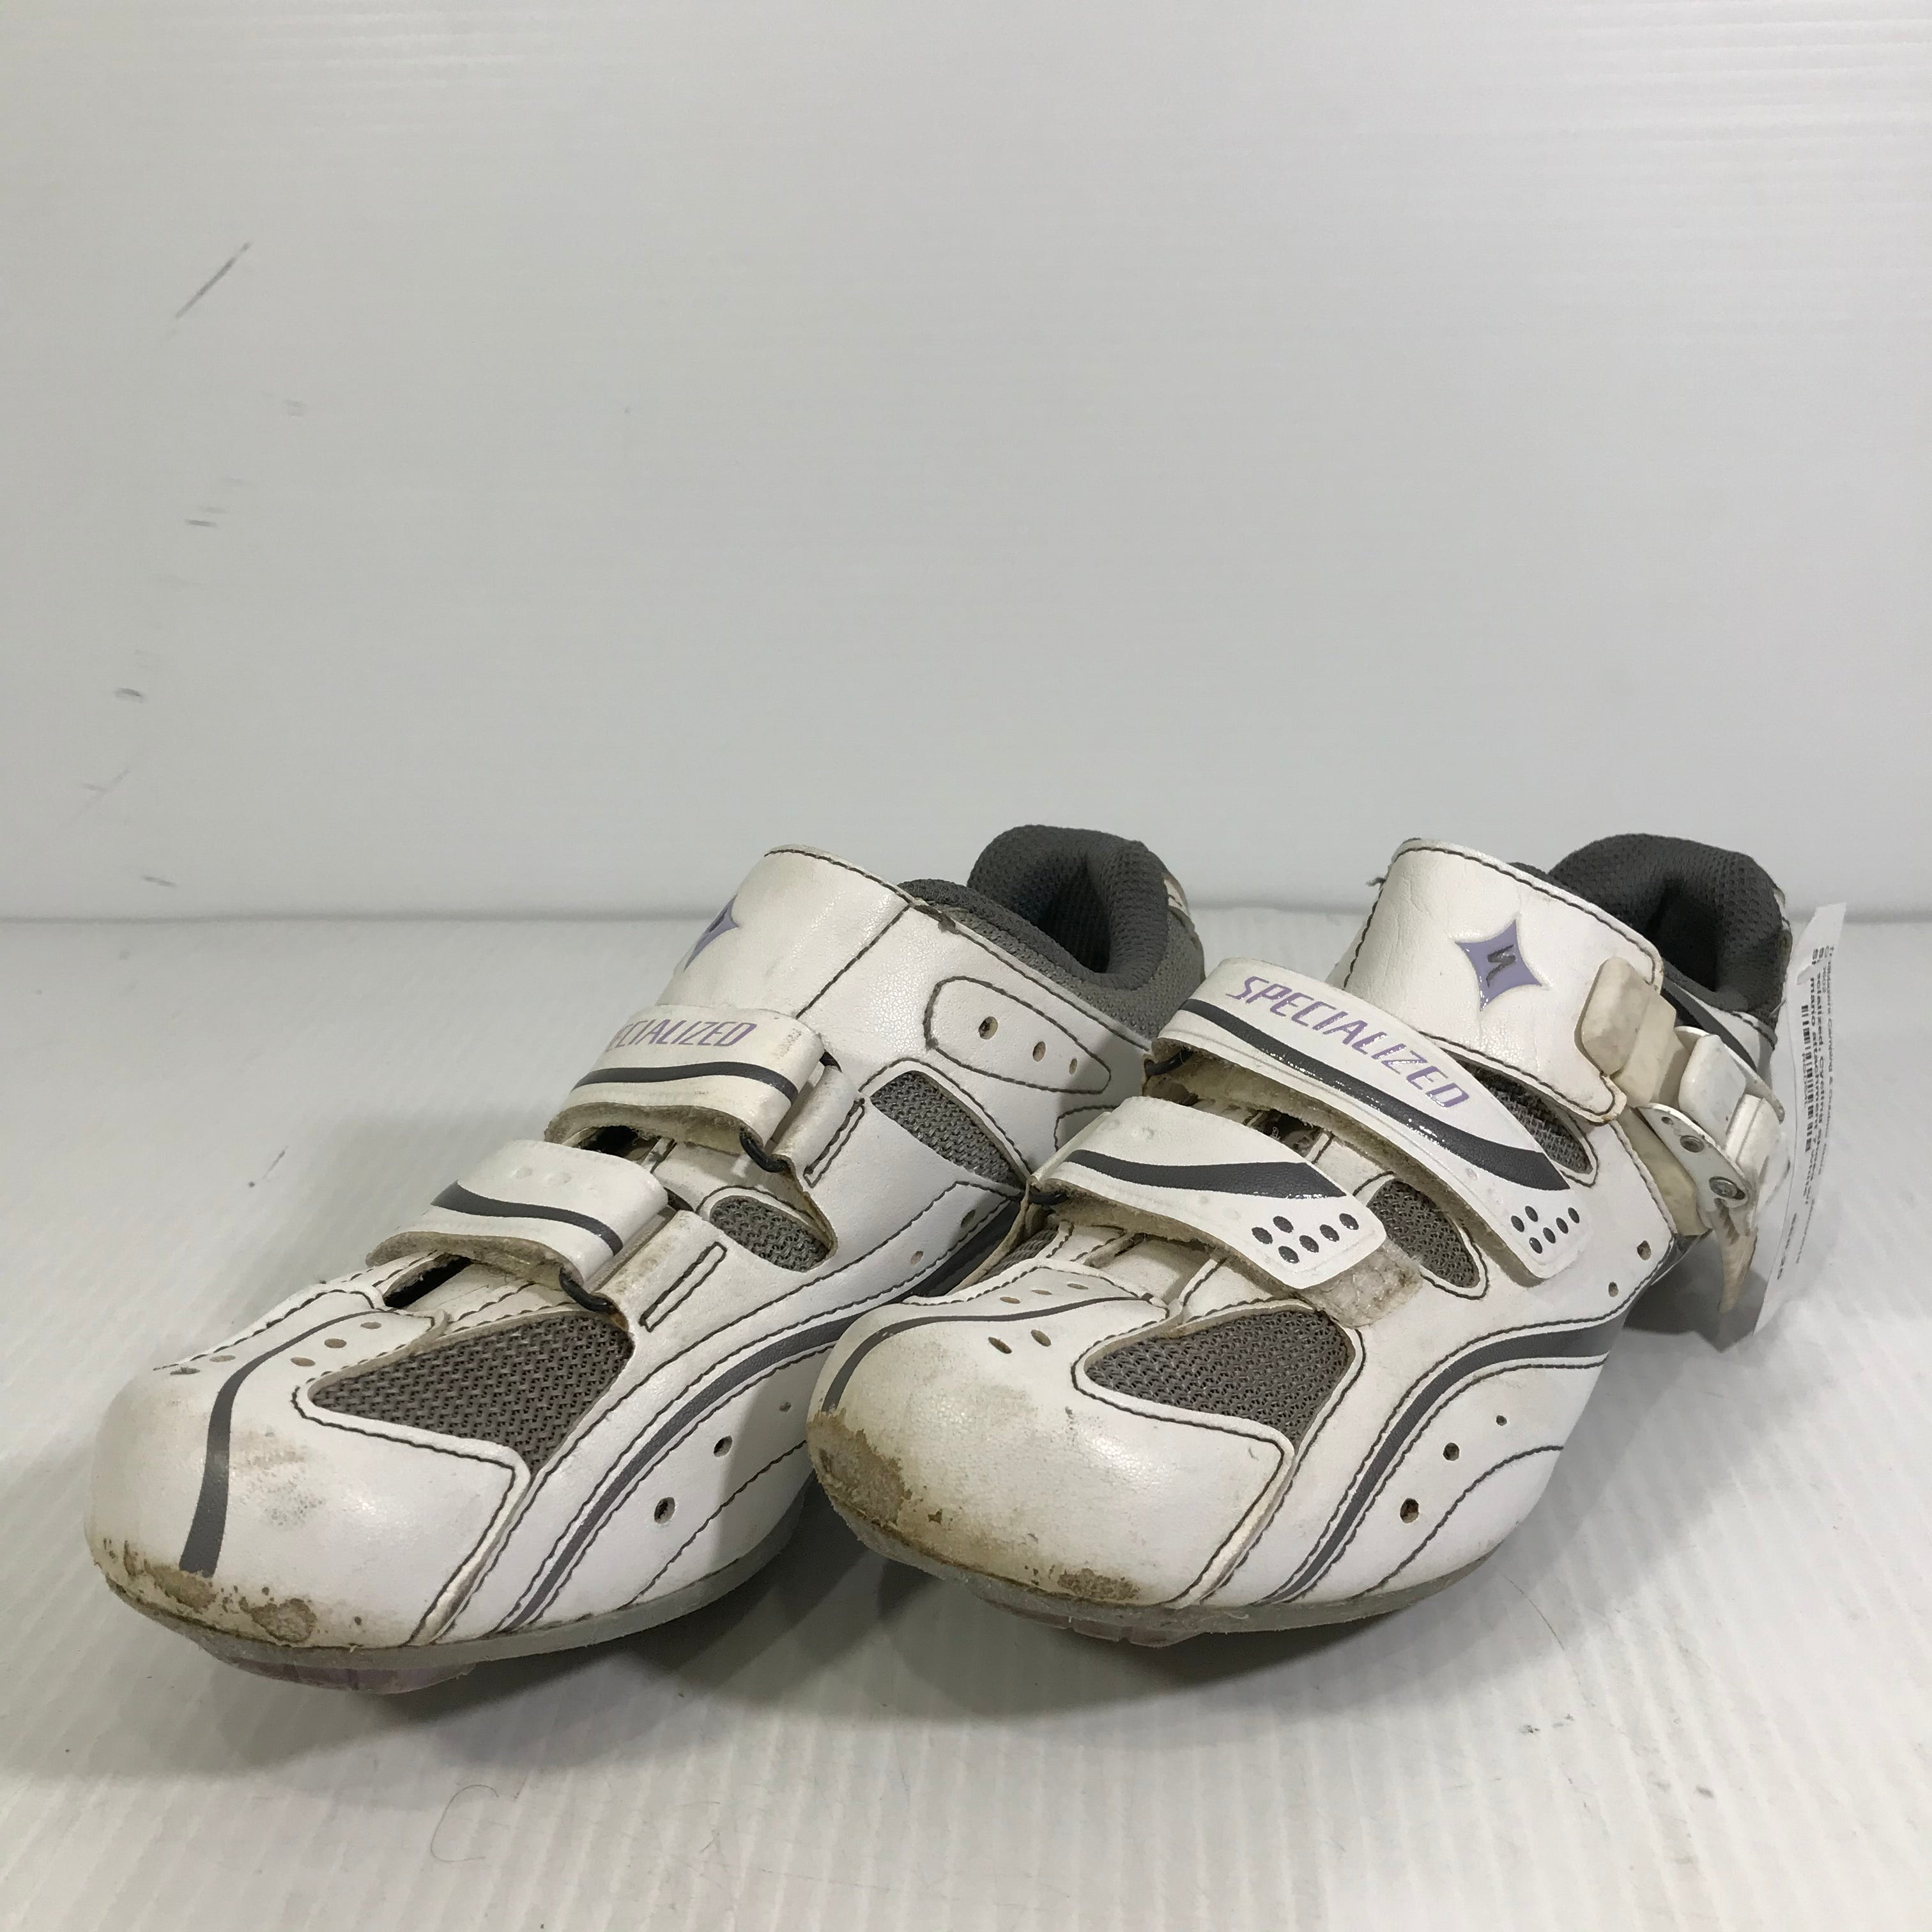 Specialized Cycling Shoes with Shimano Cleat - Women's Size 7 - Pre-owned (RGD54L)